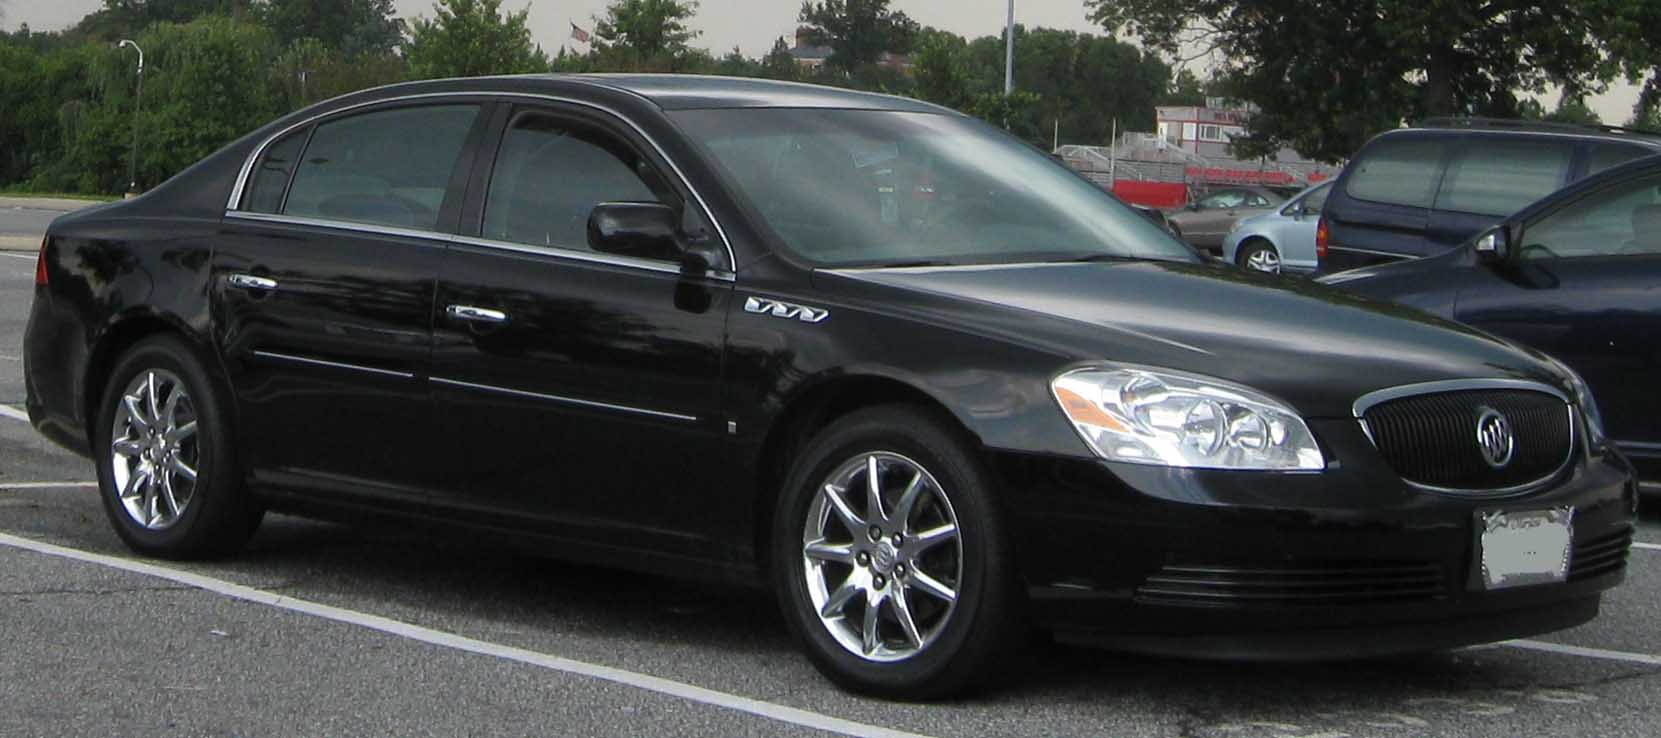 buick lucerne pictures